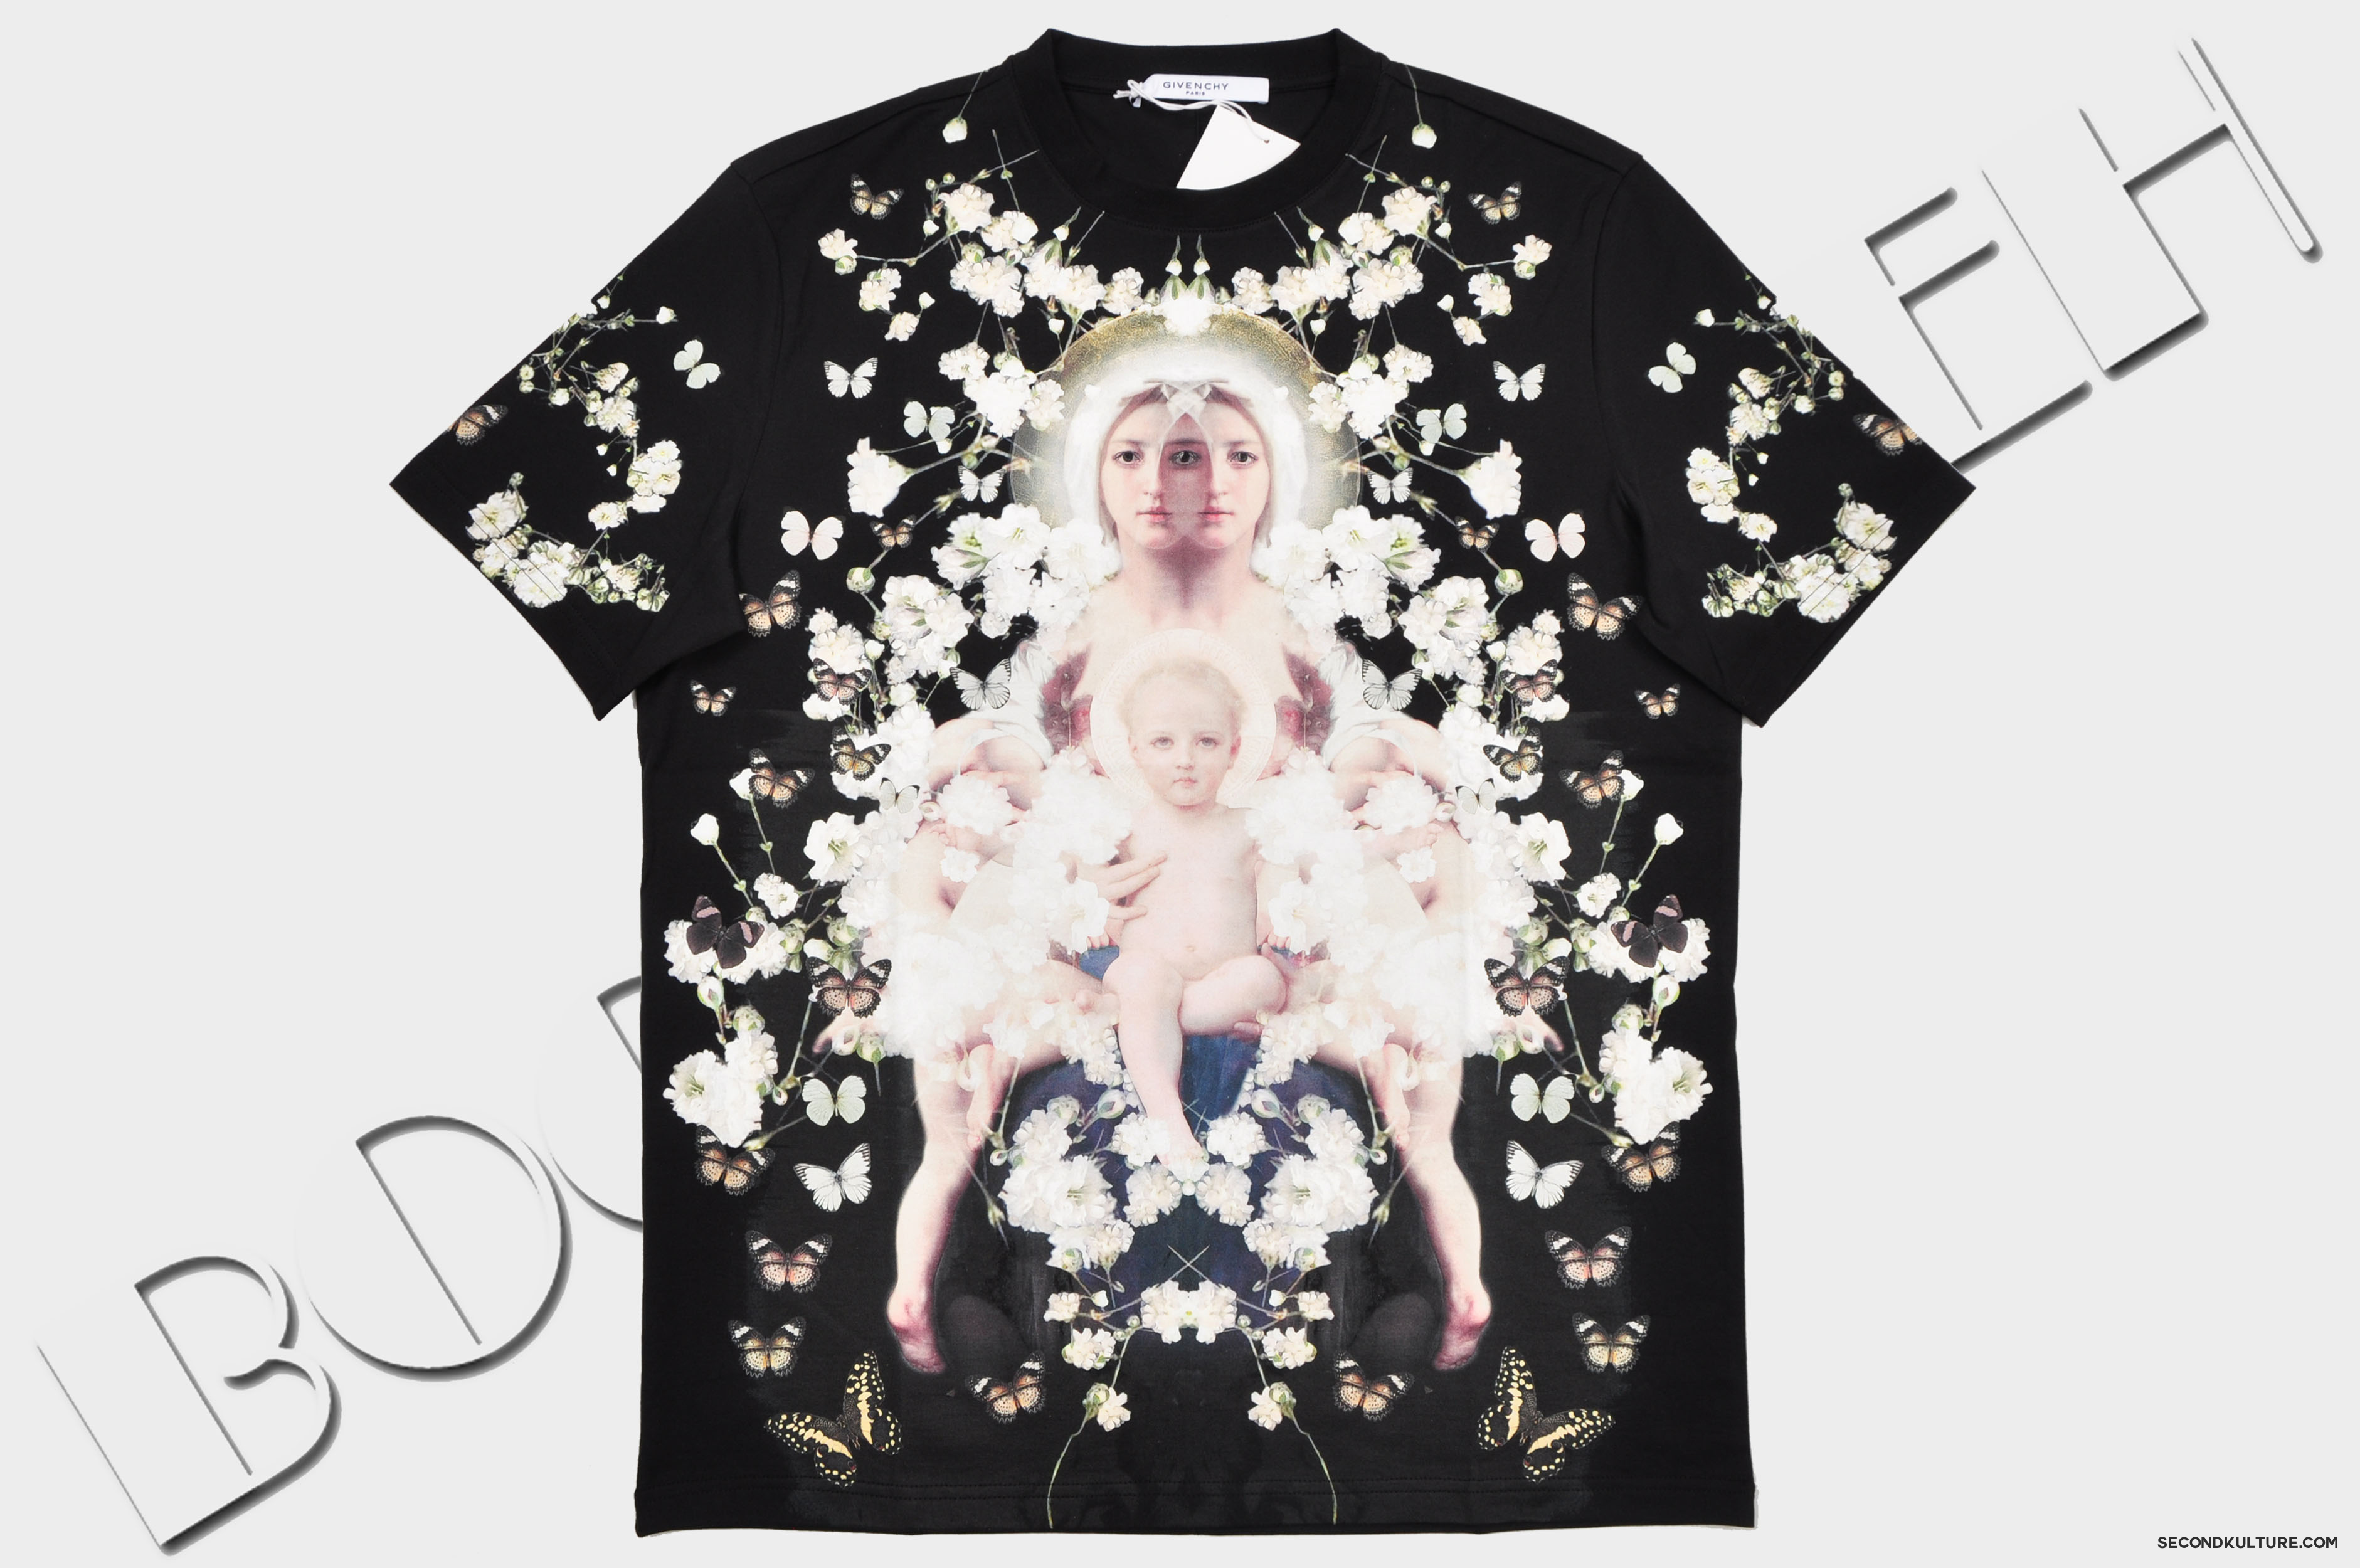 Givenchy-Black-Madonna-Floral-Gypsophila-Babys-Breath-Print-Colombian-Fit-T-Shirt-Pre-Fall-2015-15X7708493